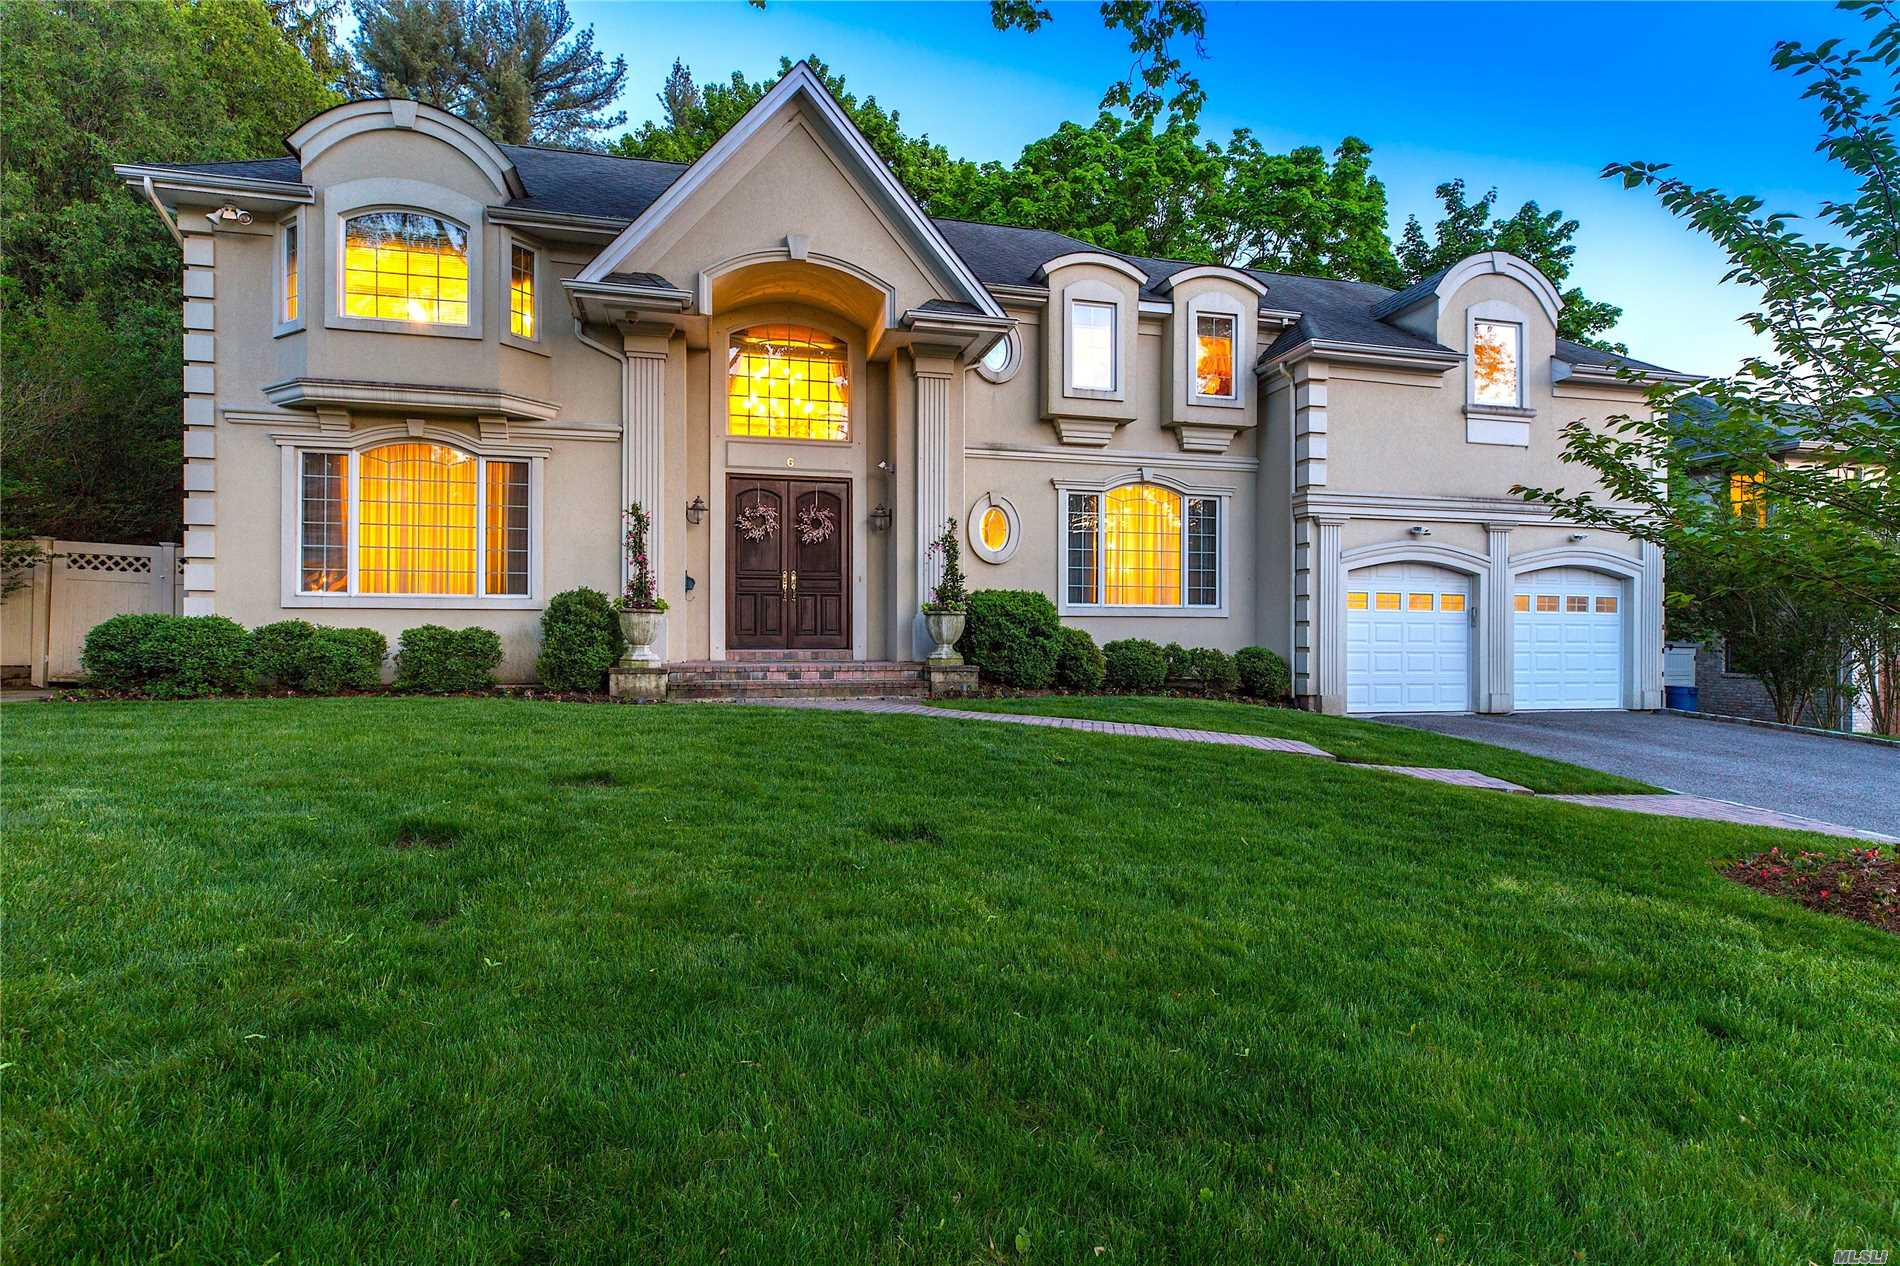 Stunning Center Hall Colonial Situated On Beautiful Flat Property In The Prestigious Flower Hill Section Of Roslyn. The Home Boasts Soaring Ceilings, Chef's Kitchen With Top-Of-The-Line Appliances, Large Living Room, Den And Dining Room With Custom Moldings And Finishes. 5 Bedrooms Plus Bonus Upstairs Family Room. Full Basement. Flat Private Backyard. Port Washington Train Sticker And Roslyn Schools.